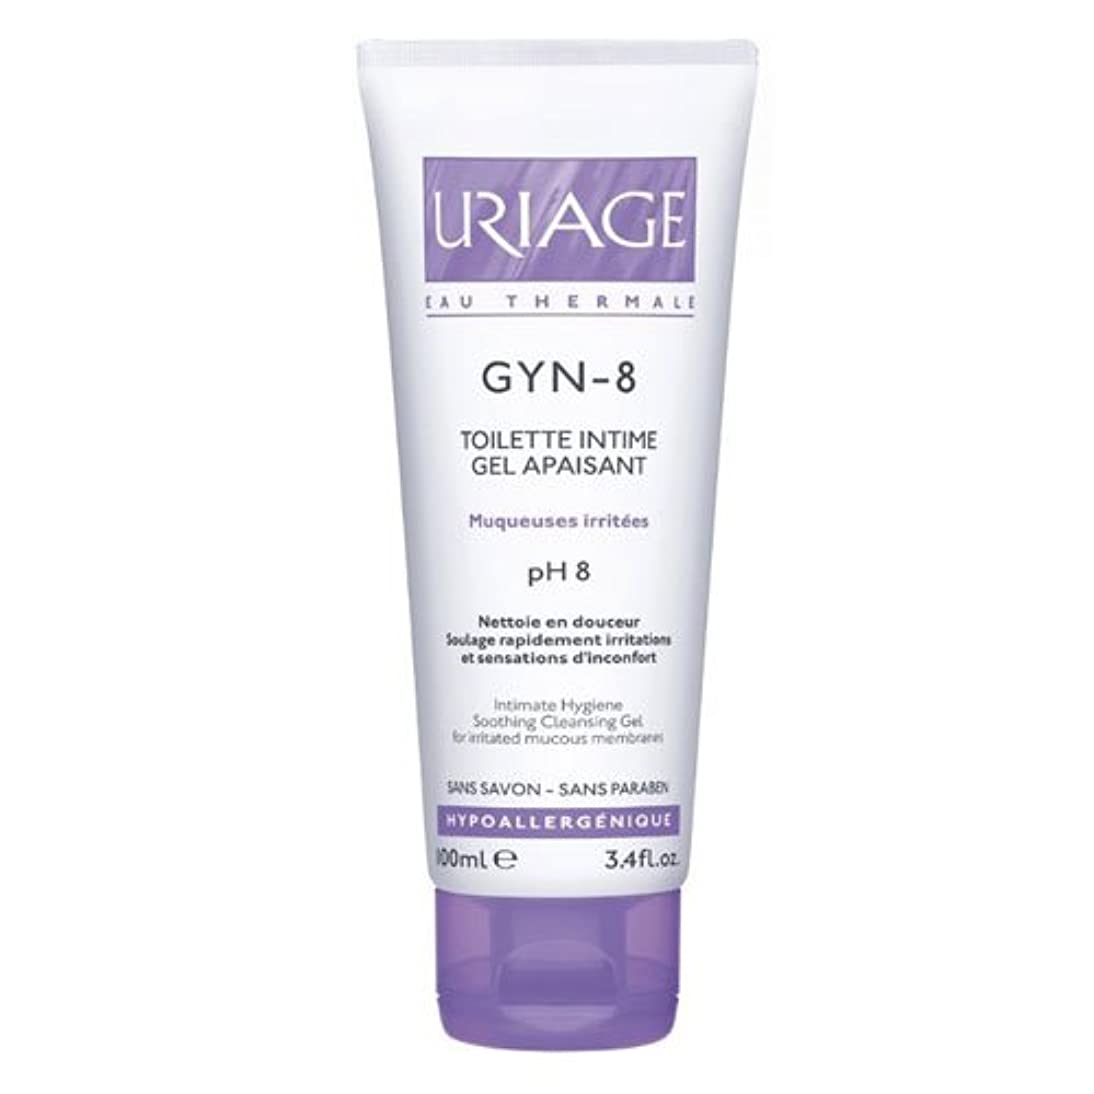 Uriage Gyn 8 Intimate Hygiene Soothing Cleansing Gel 100ml [並行輸入品]